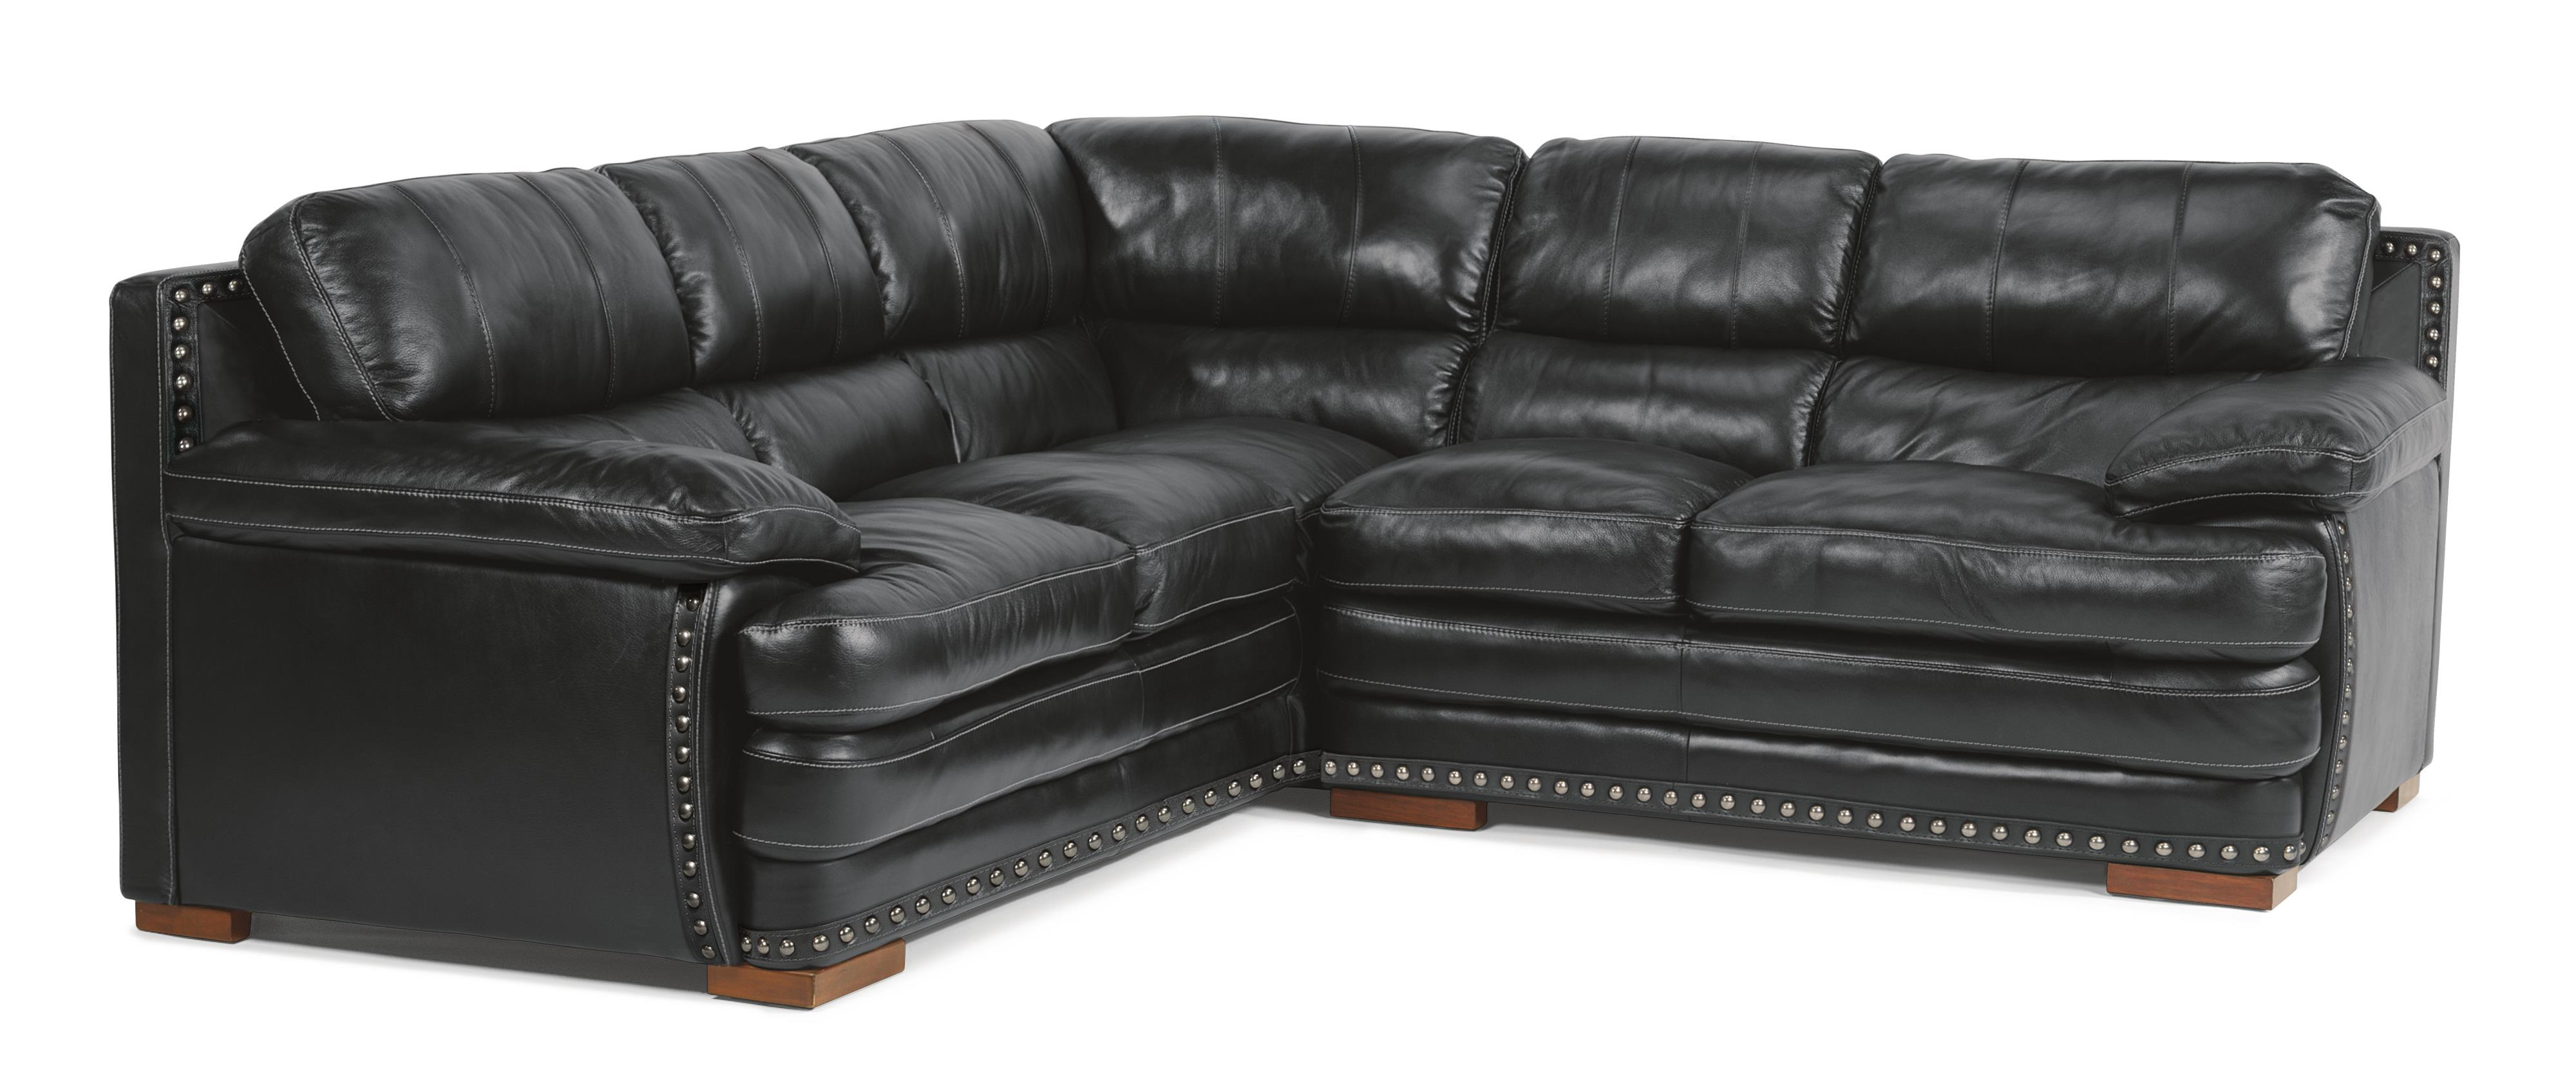 Flexsteel Reclining Sofa Reviews 2017 Centerfieldbarcom